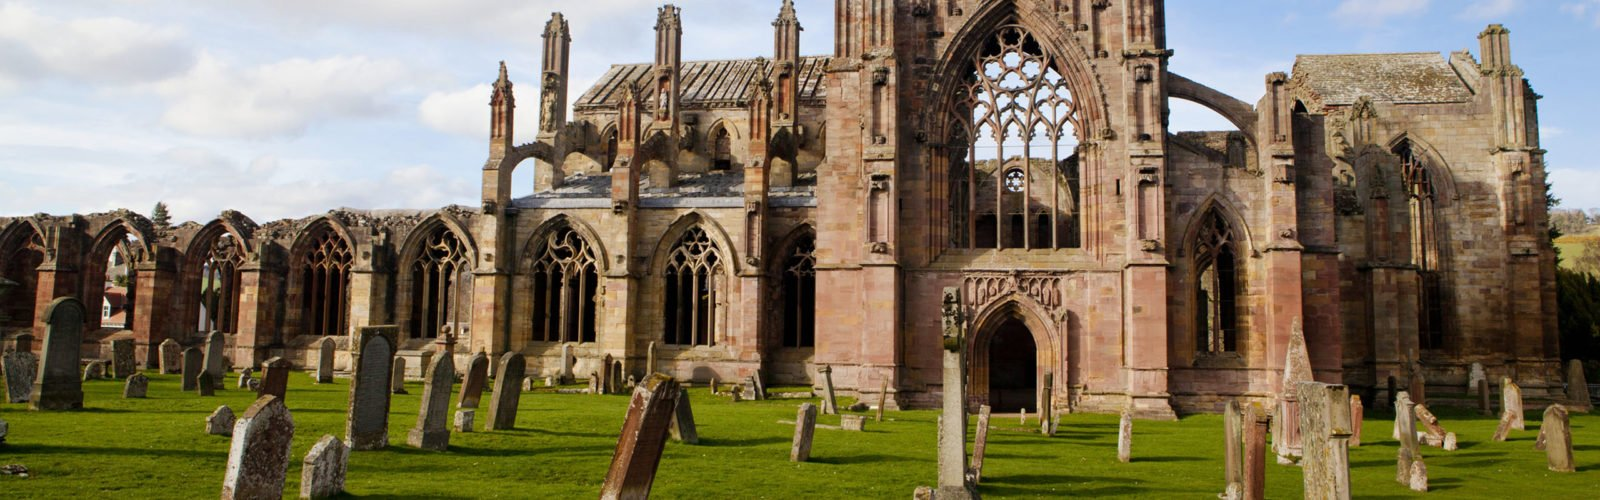 Melrose Abbey ruins, Gothic architecture, Scotland